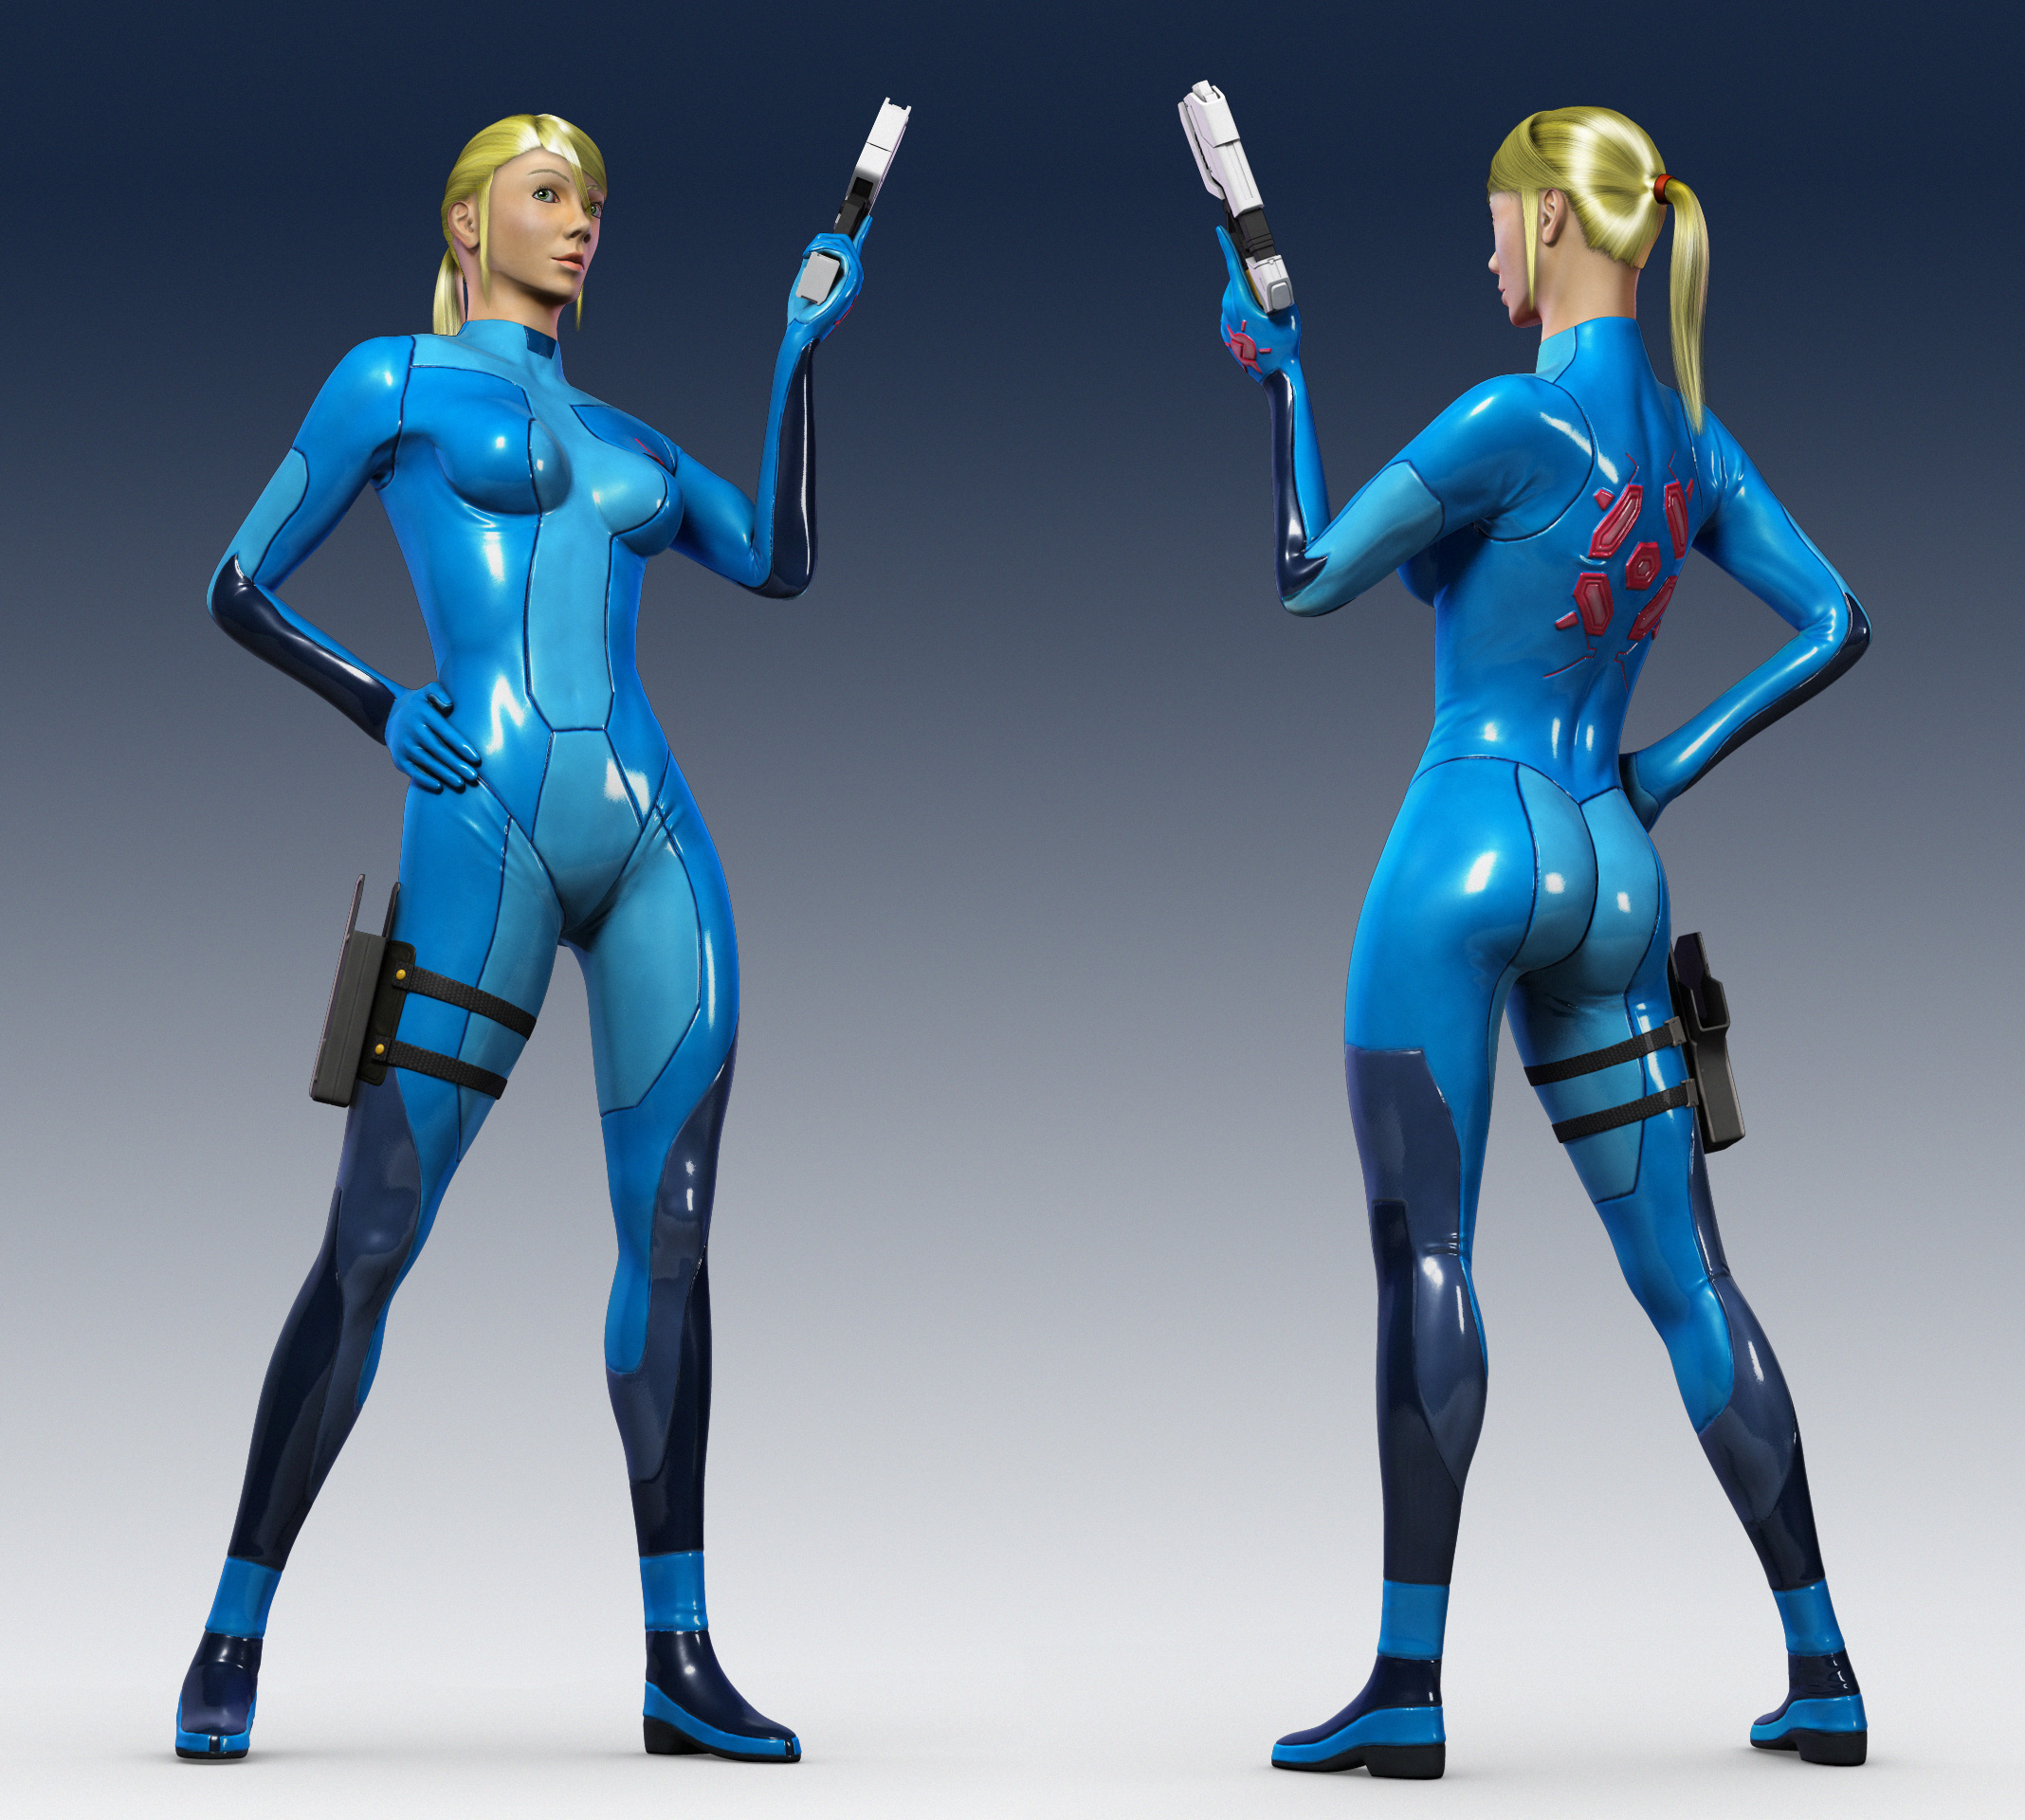 images of zero suit samus spacehero